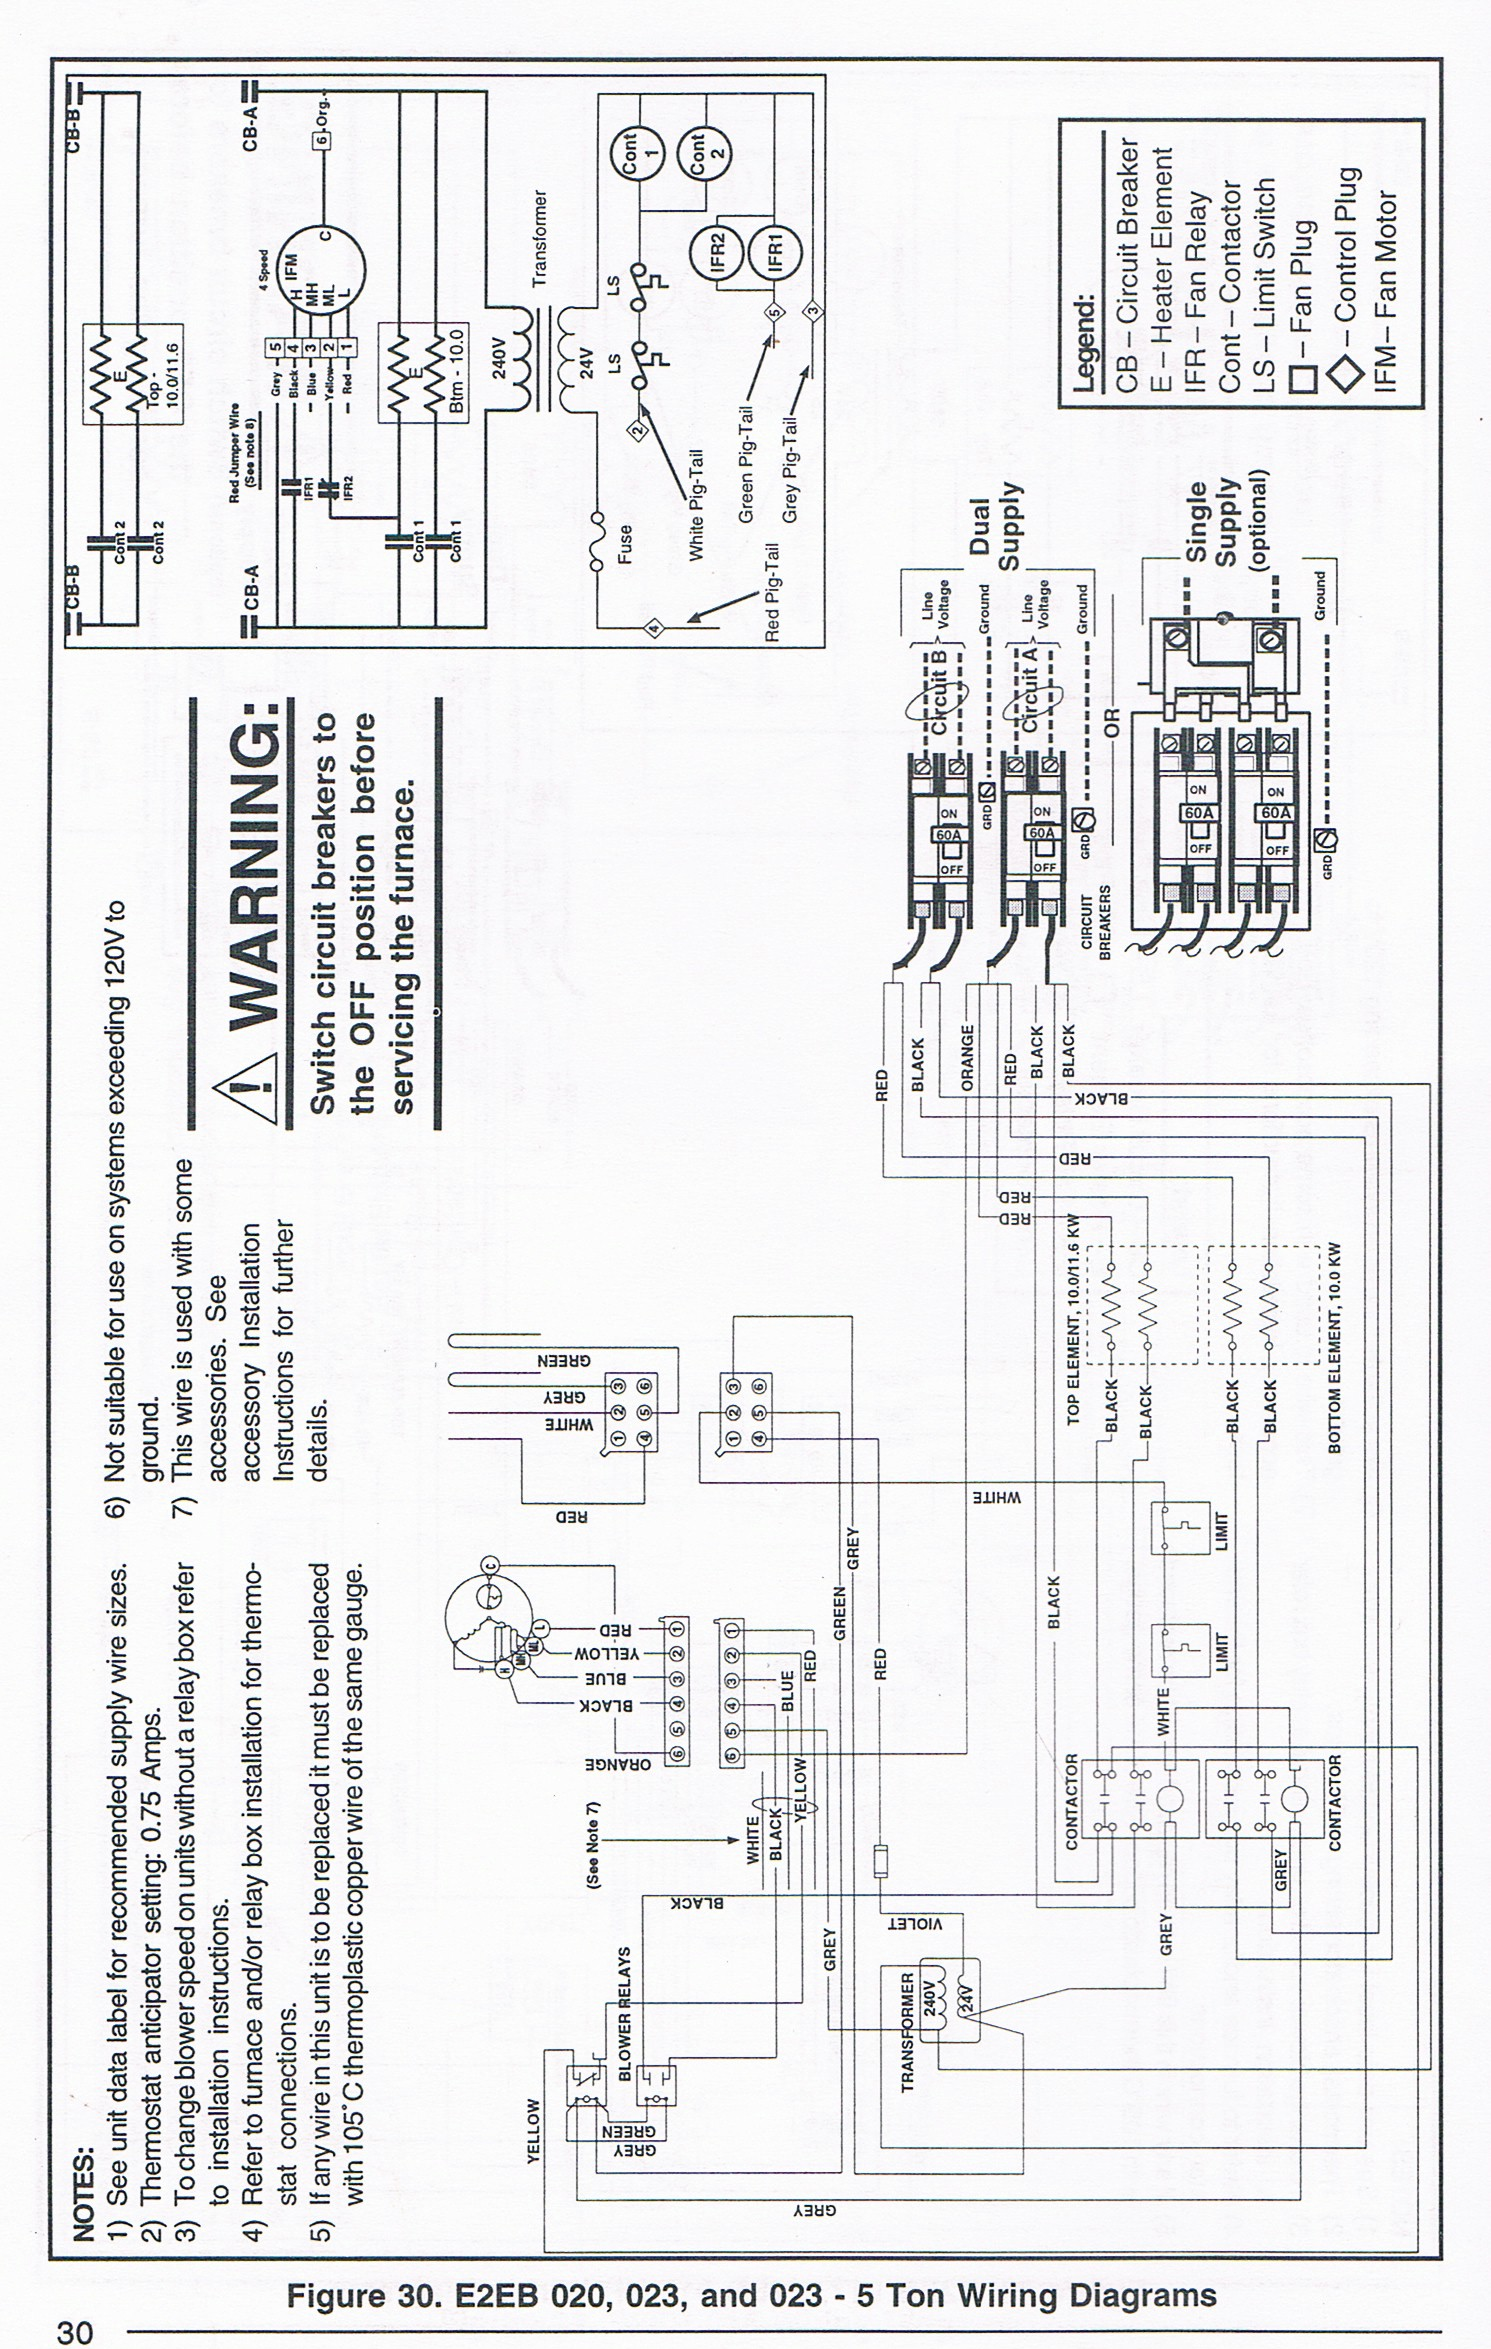 2011 05 04_234443_e2eb wiring diagram for intertherm eb series readingrat net Wiring Diagram for Miller Electric Furnace at eliteediting.co